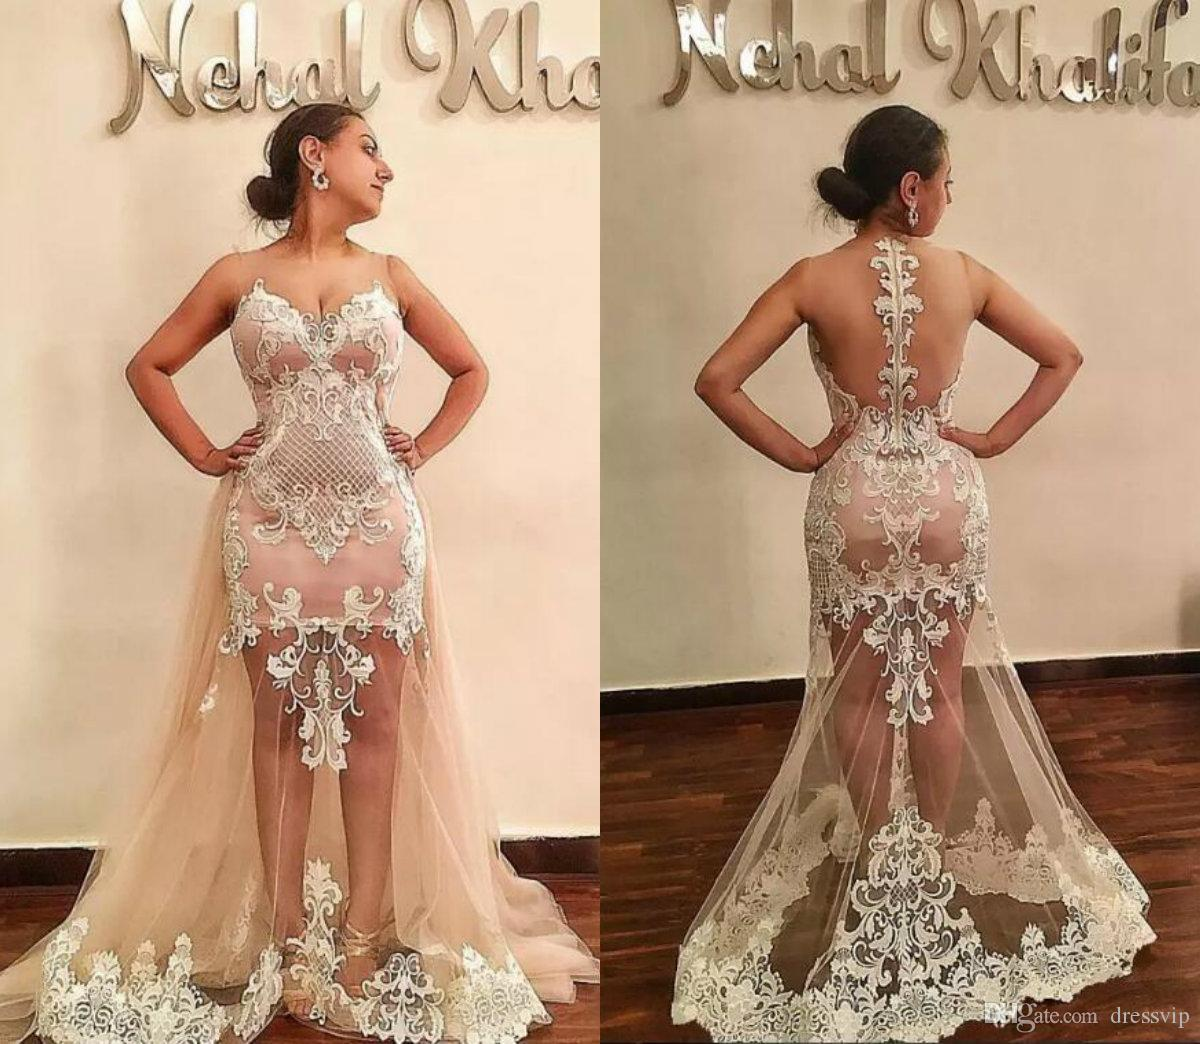 d5300f4c53 Dusty Pink Mermaid Prom Dresses Sheer Jewel Neck 2018 Sleeveless Lace  Appliqued Sexy Illusion Bodices Evening Gowns With Detachable Train  Sequined Prom ...